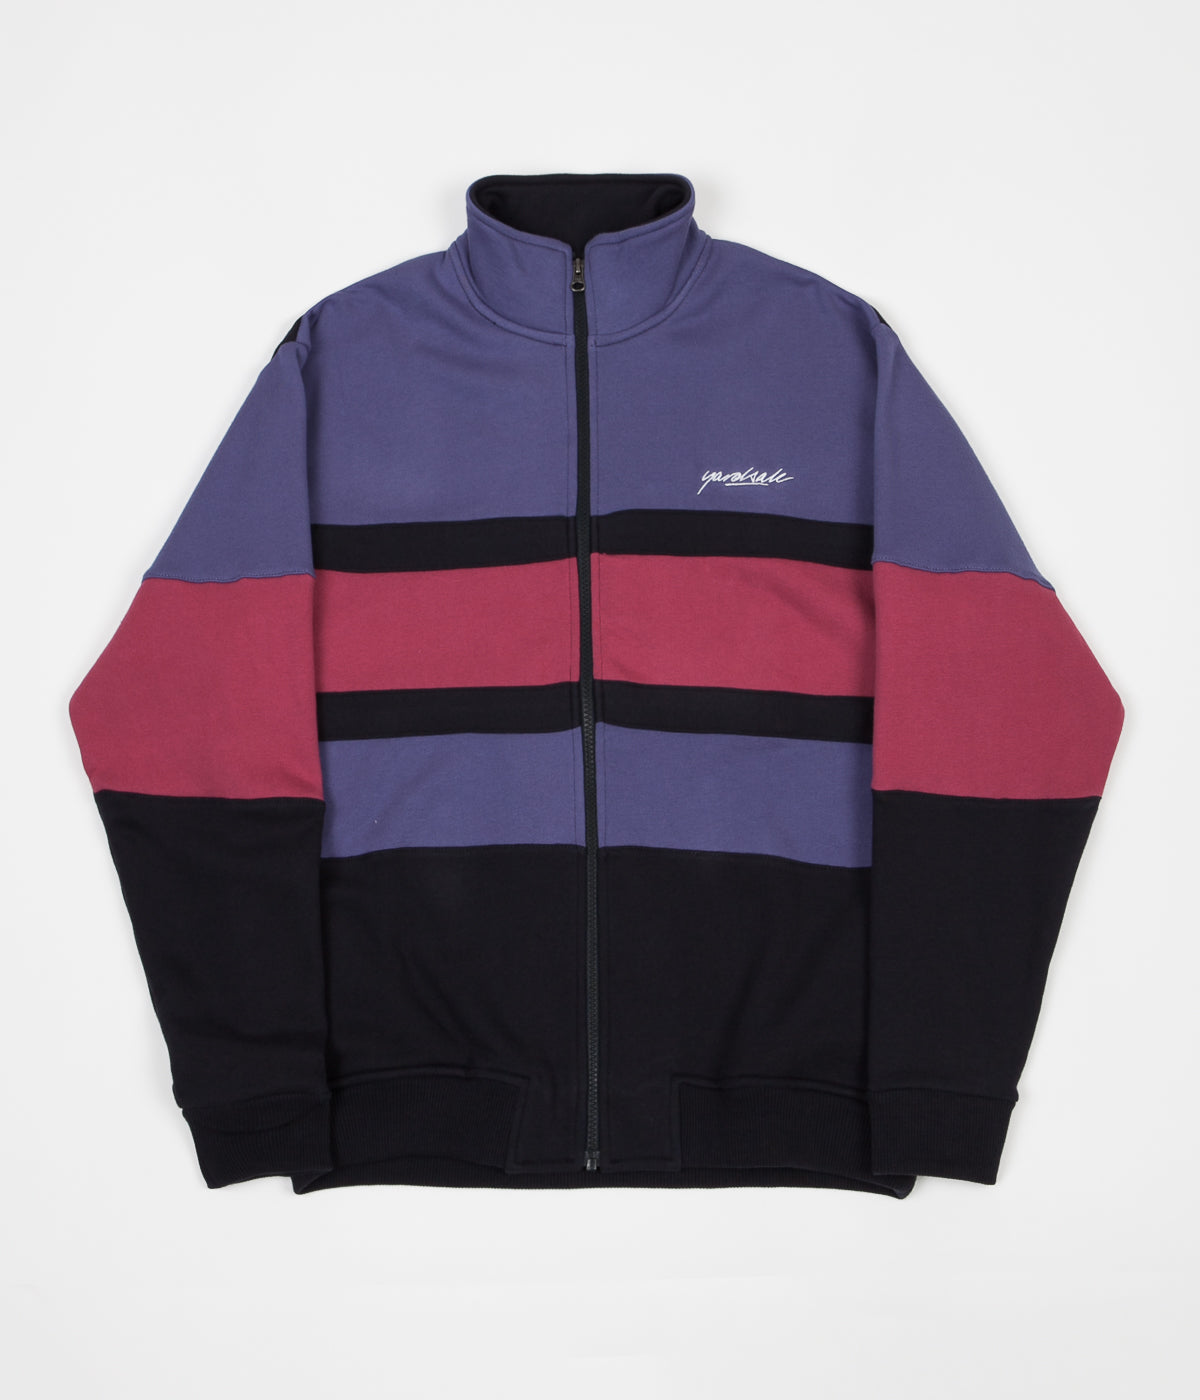 Yardsale Dior Full Zip Sweatshirt - Indigo / Red / Navy